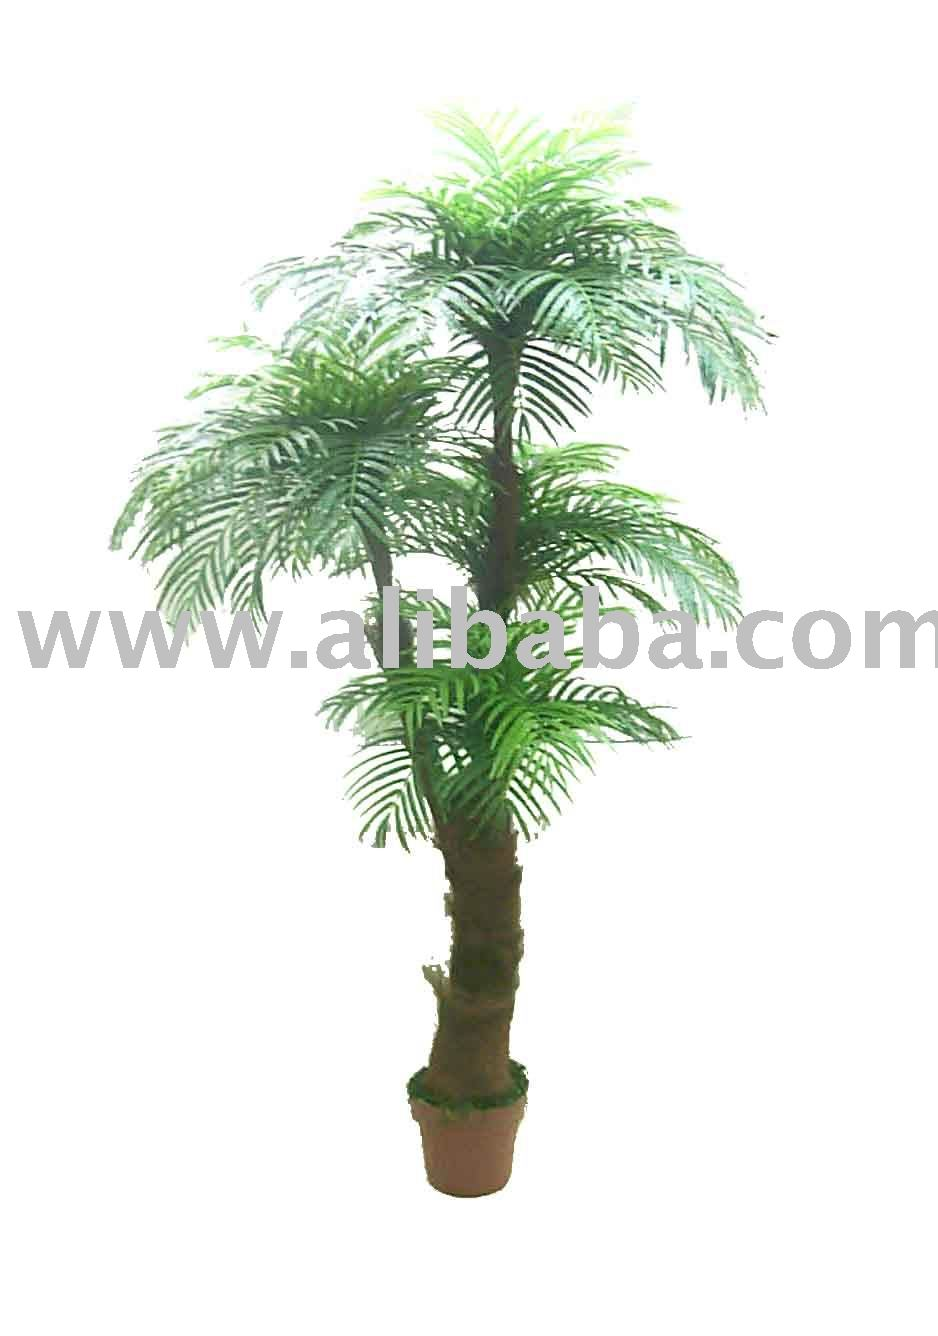 Sell Bonsais Plants And Trees